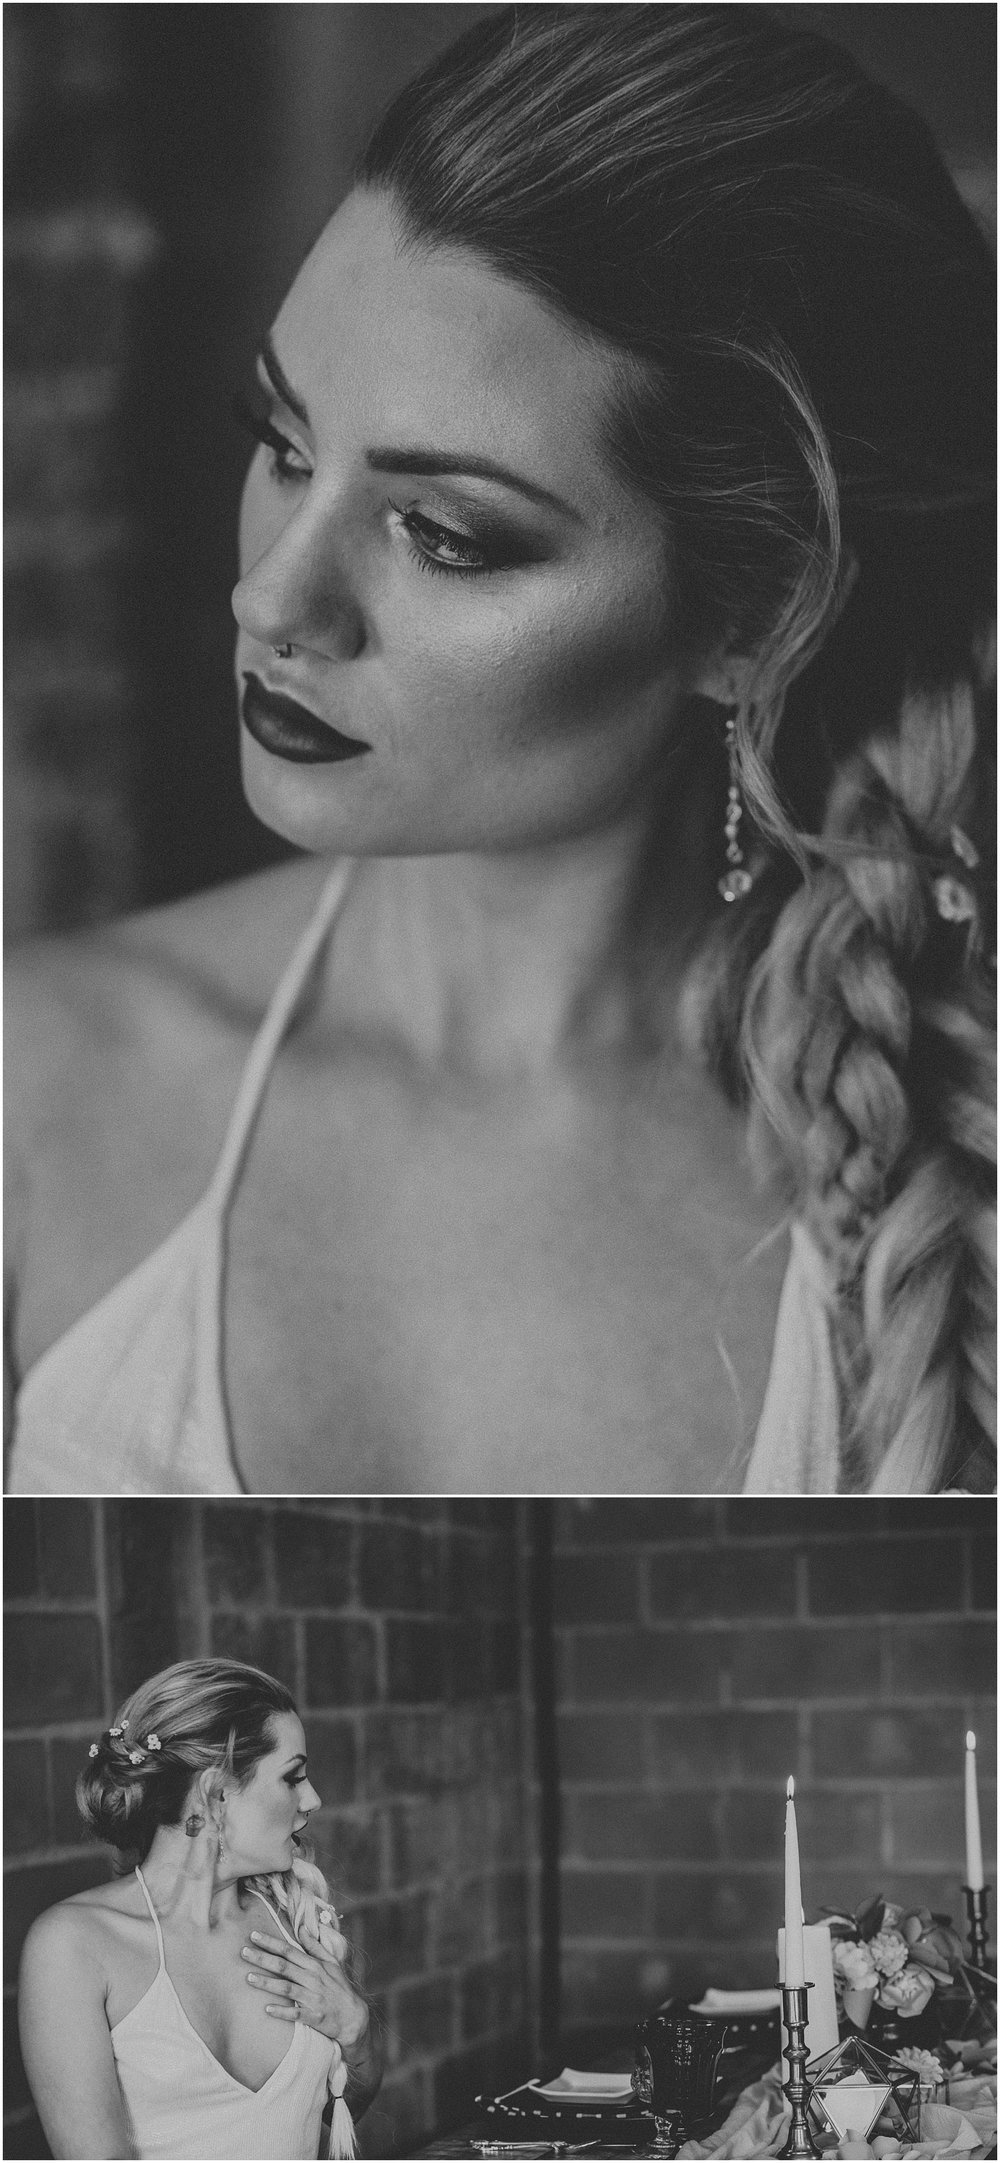 styled shoot-bridal portraits-portraits-bride-rock and roll-industrial-urban-wedding-inspiration-nj-new jersey-nyc-new york city-art-diy wedding_0037.jpg